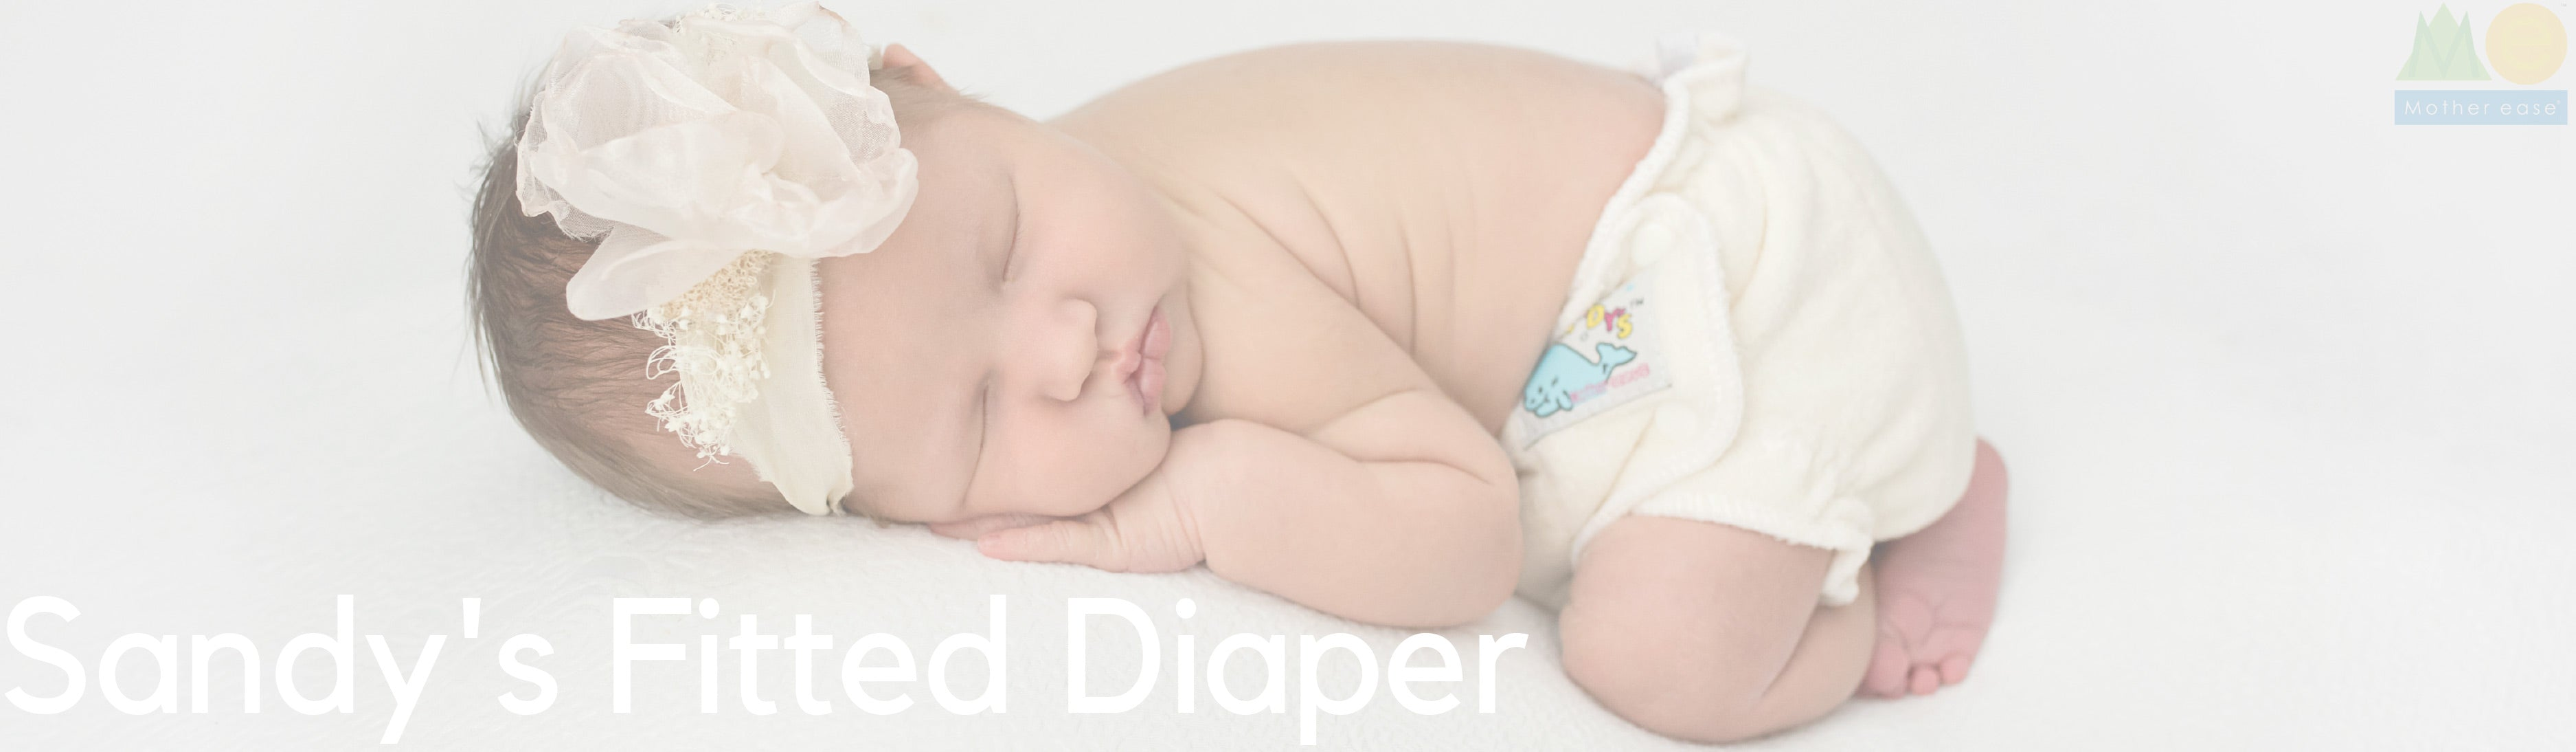 Mother-ease-Sandy's-Fitted-Diaper-Banner-Isabelle